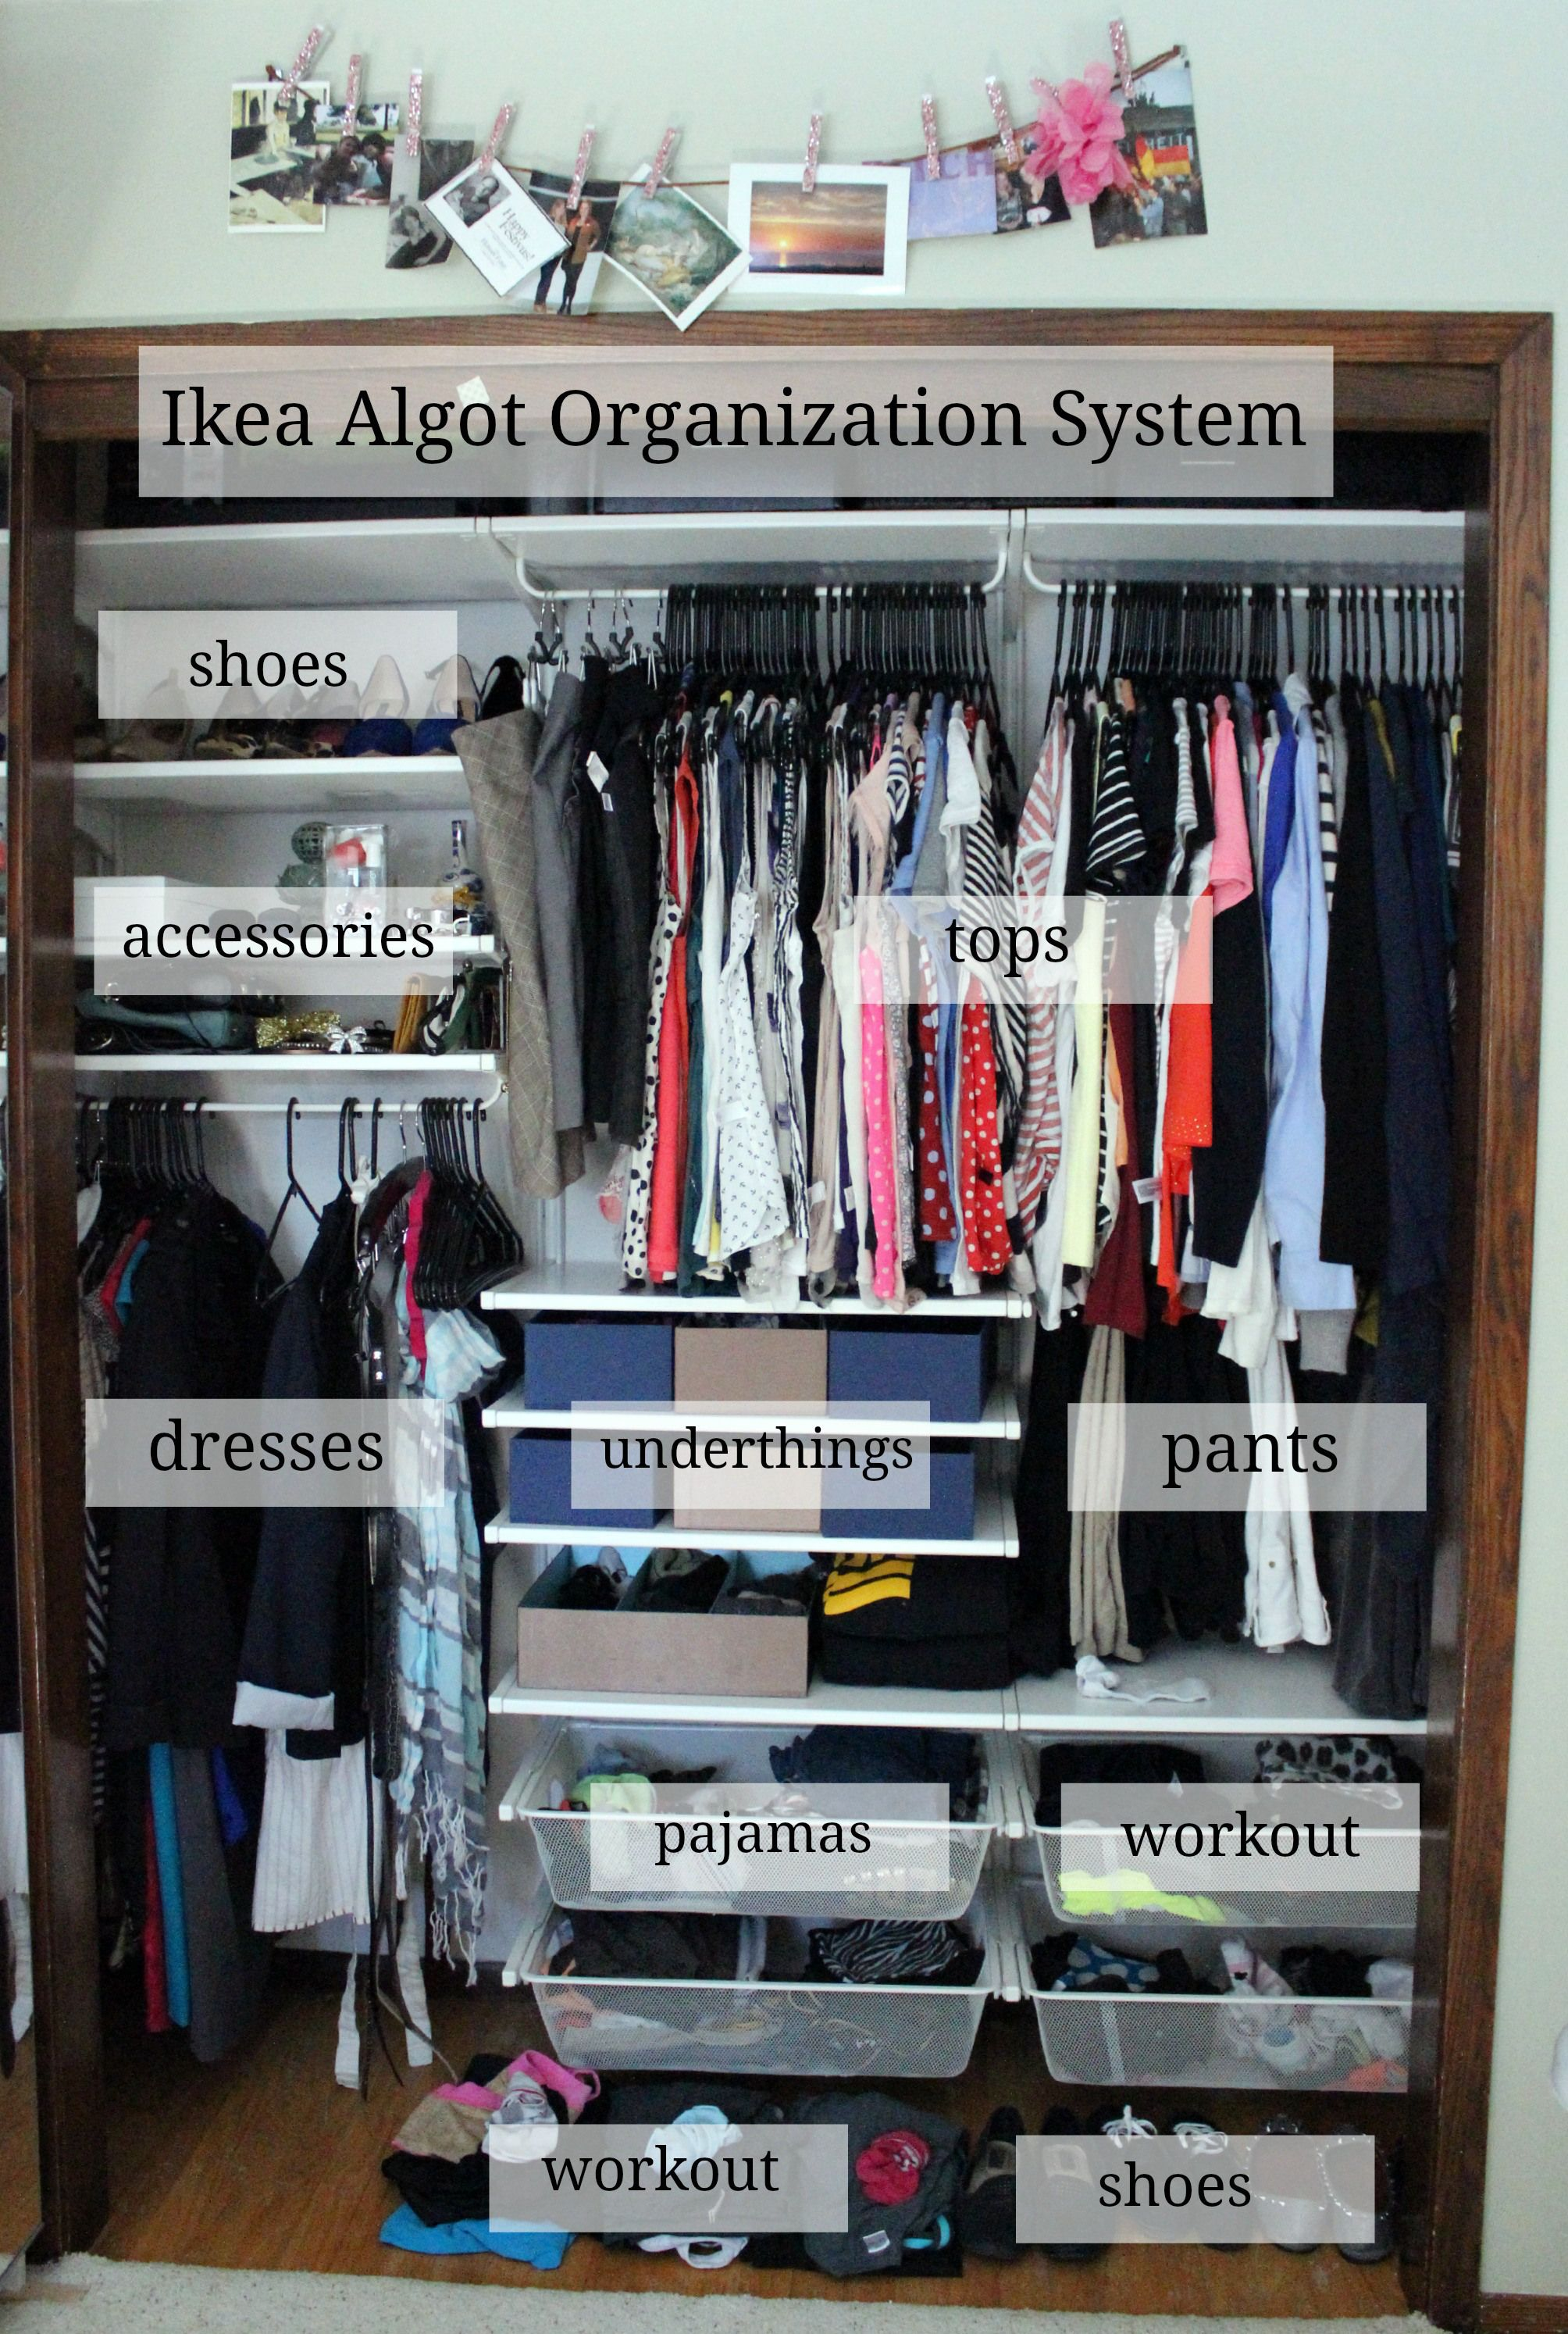 installing the ikea algot closet organizing system. Black Bedroom Furniture Sets. Home Design Ideas